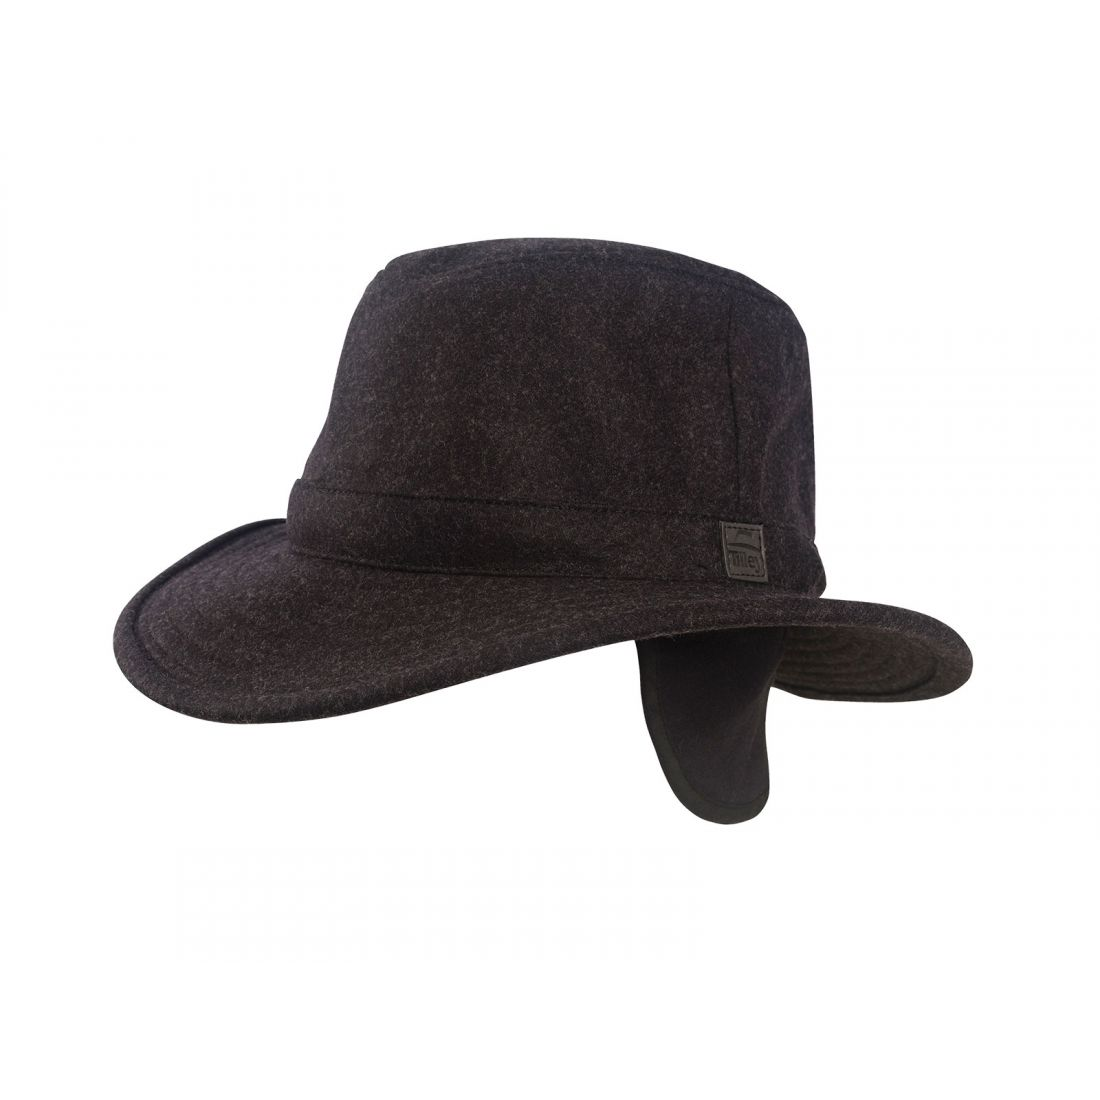 Tilley TTW2 Tec-Wool Hat - Unisex